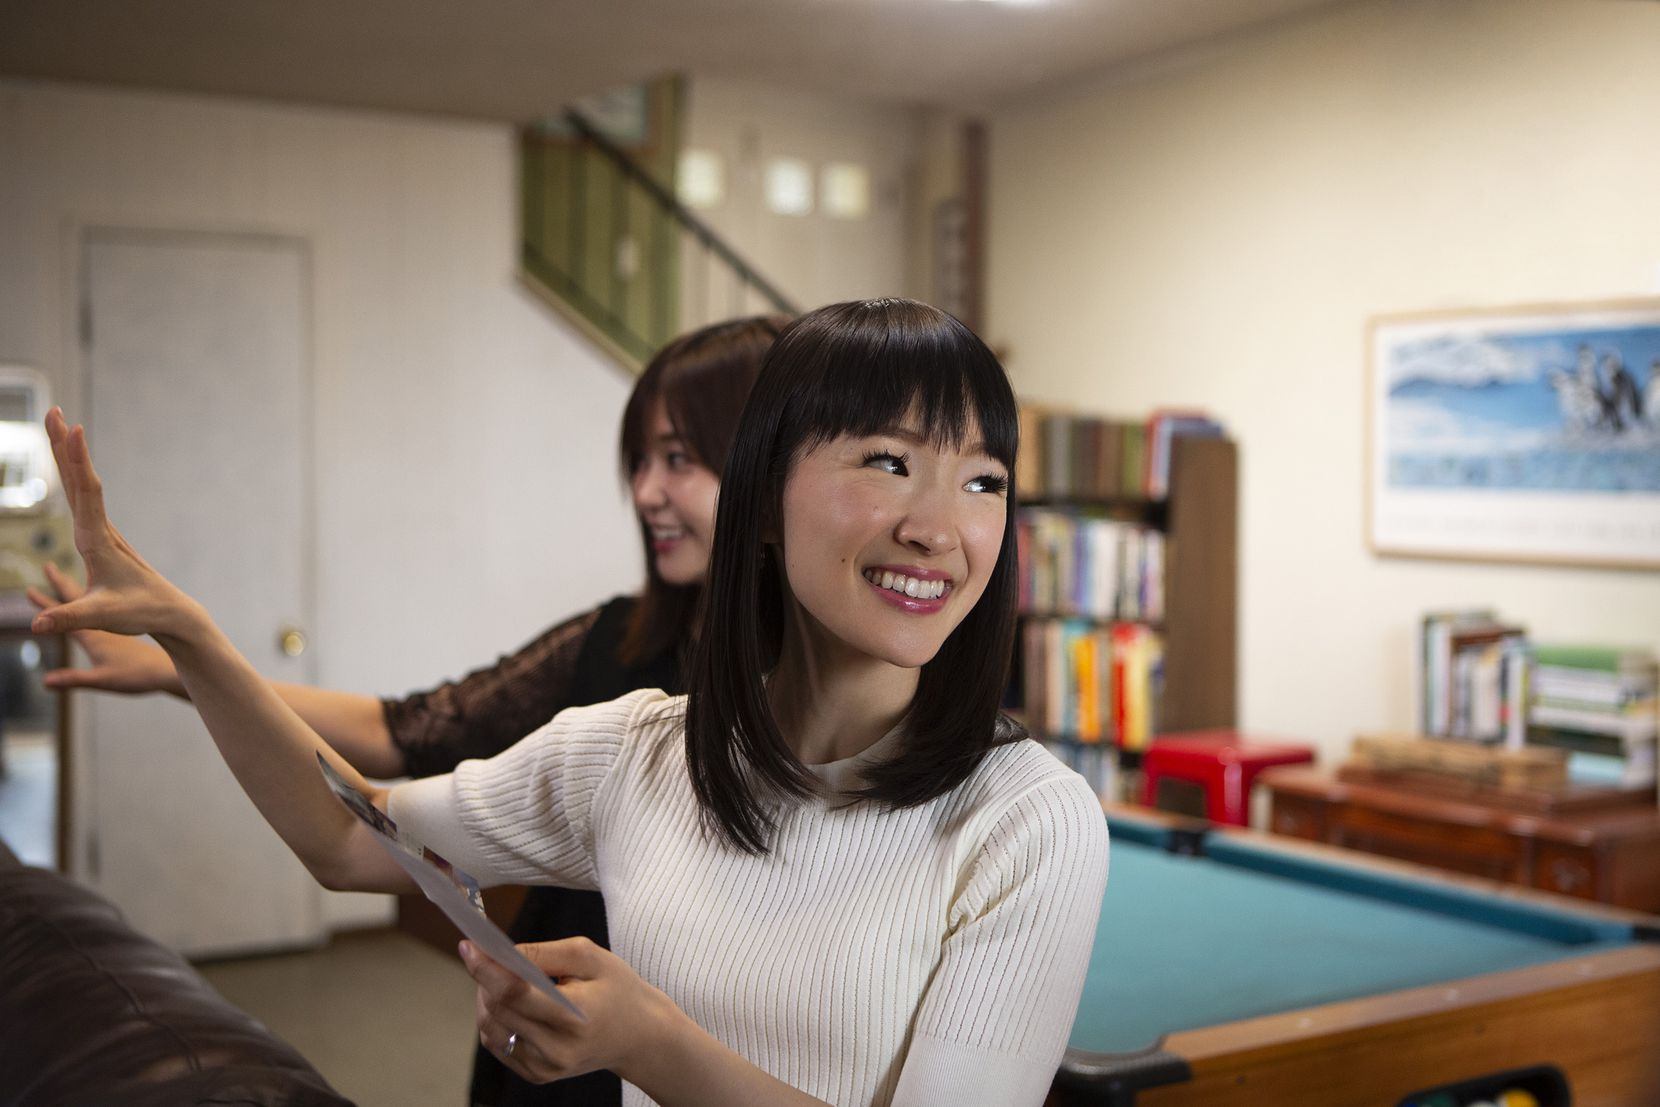 Marie Kondo says she's in talks with Netflix about another season for her popular TV show.